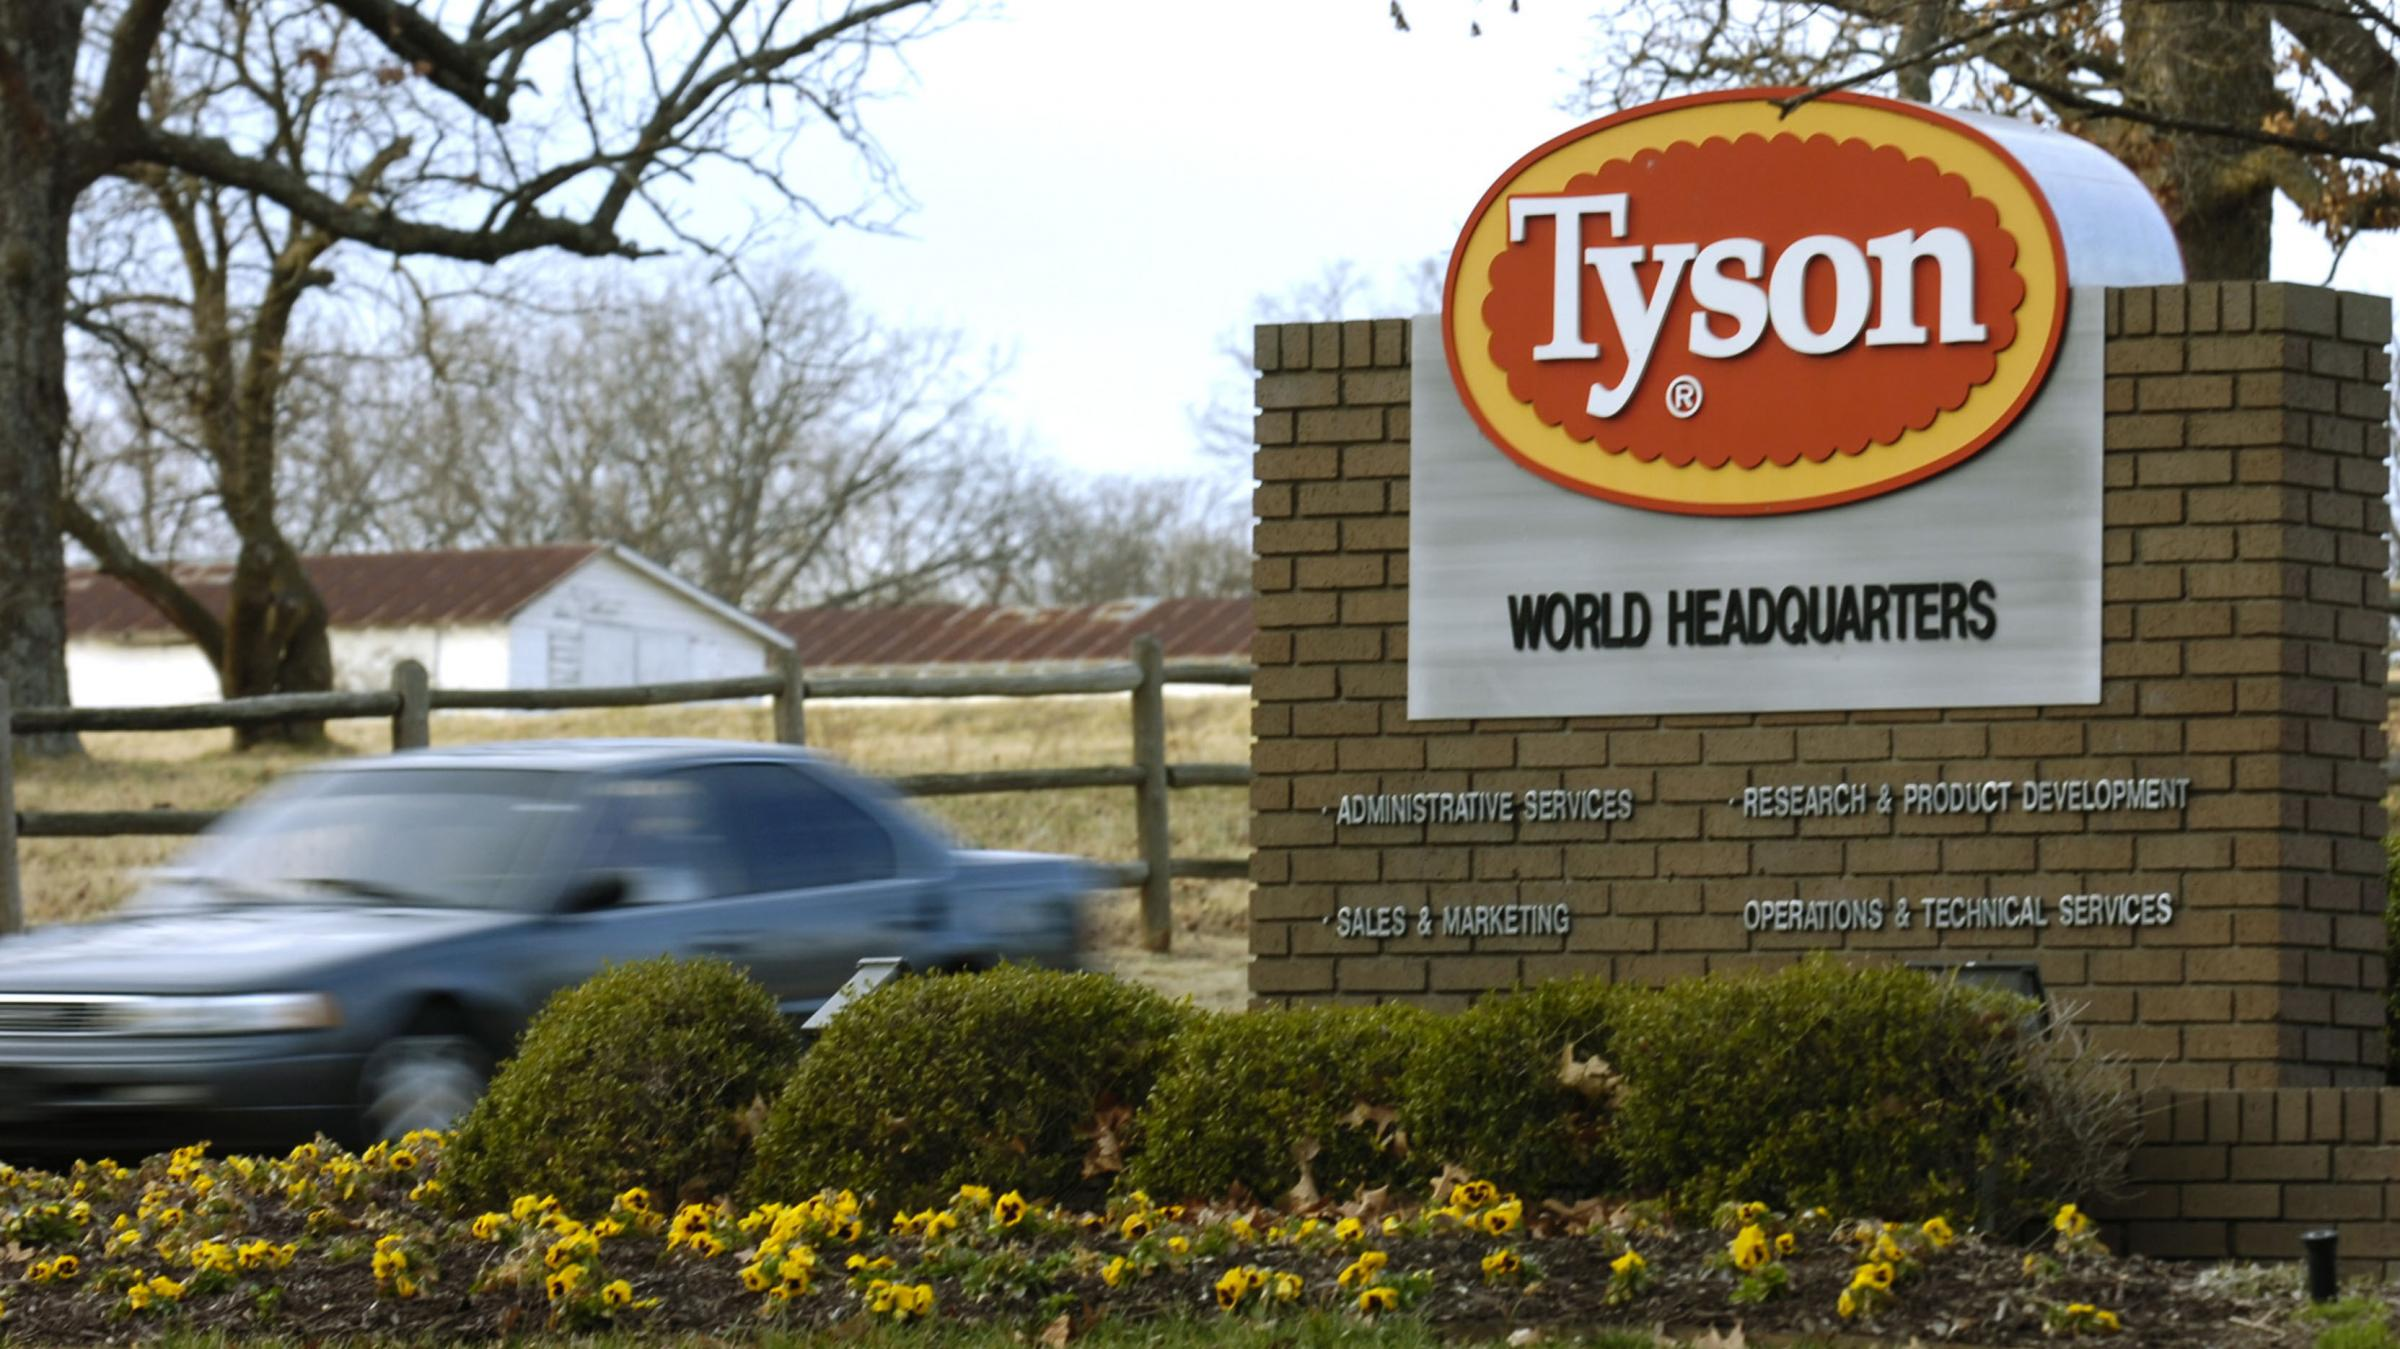 The Centers For Disease Control And Prevention Says Accidental Release Of Chlorine Gas At A Tyson Food Plant Could Have Been Prevented With Better